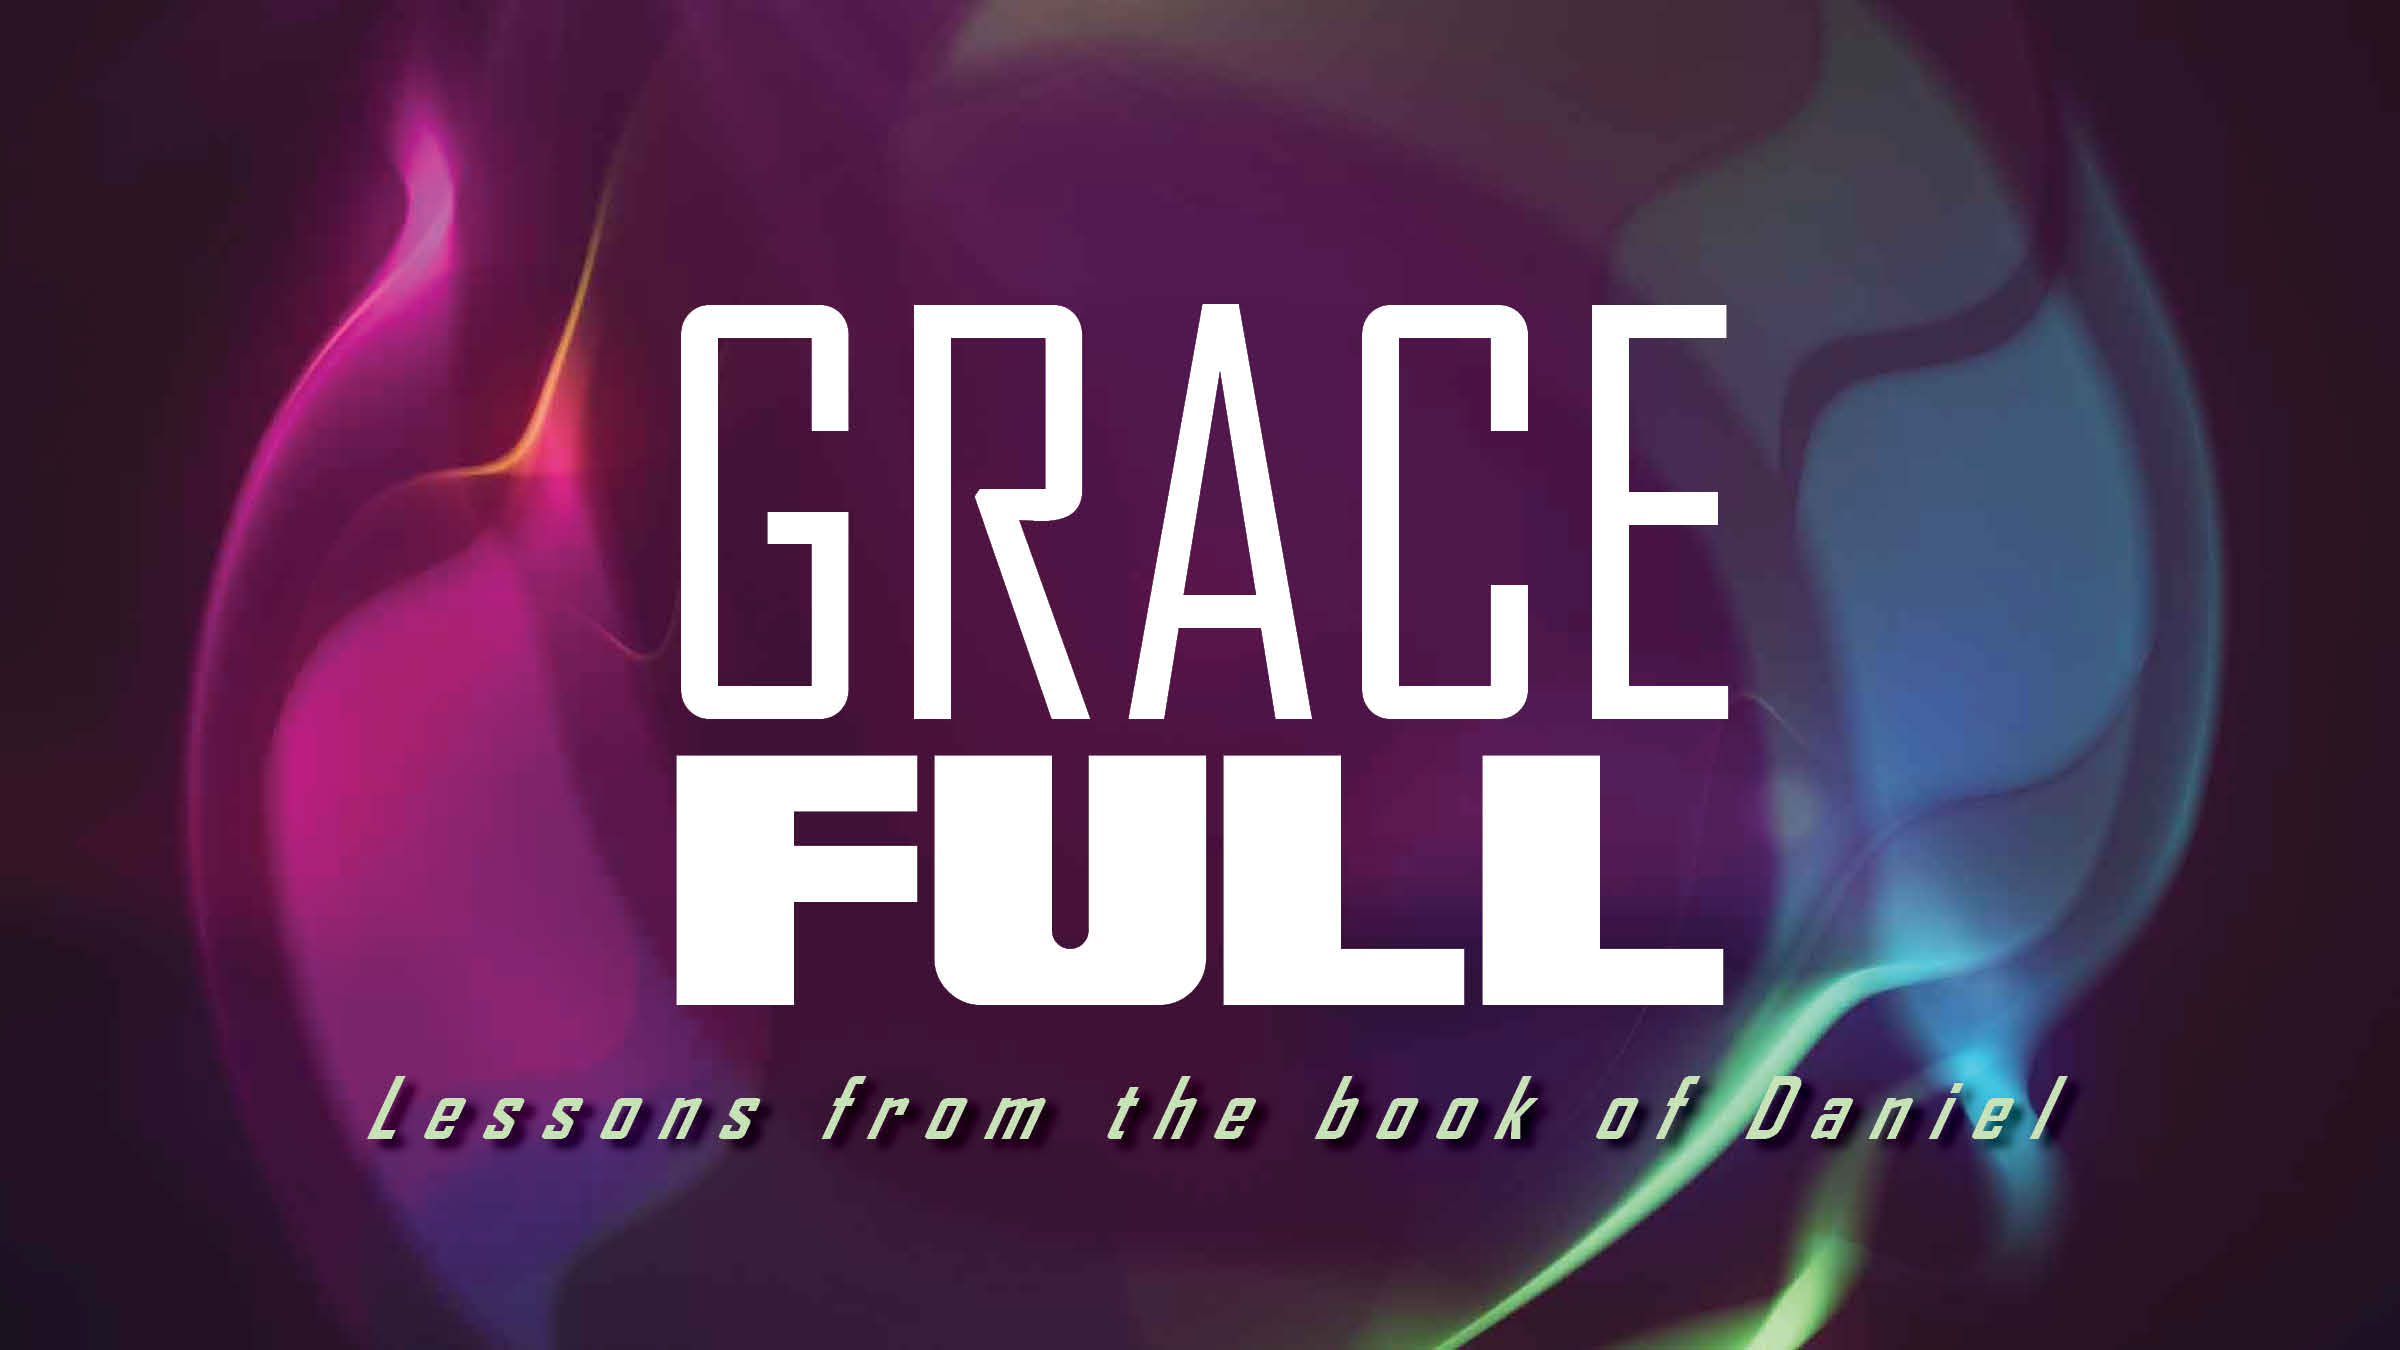 12 11 16 Grace Full, A Great Gift By Mitch Wilburn